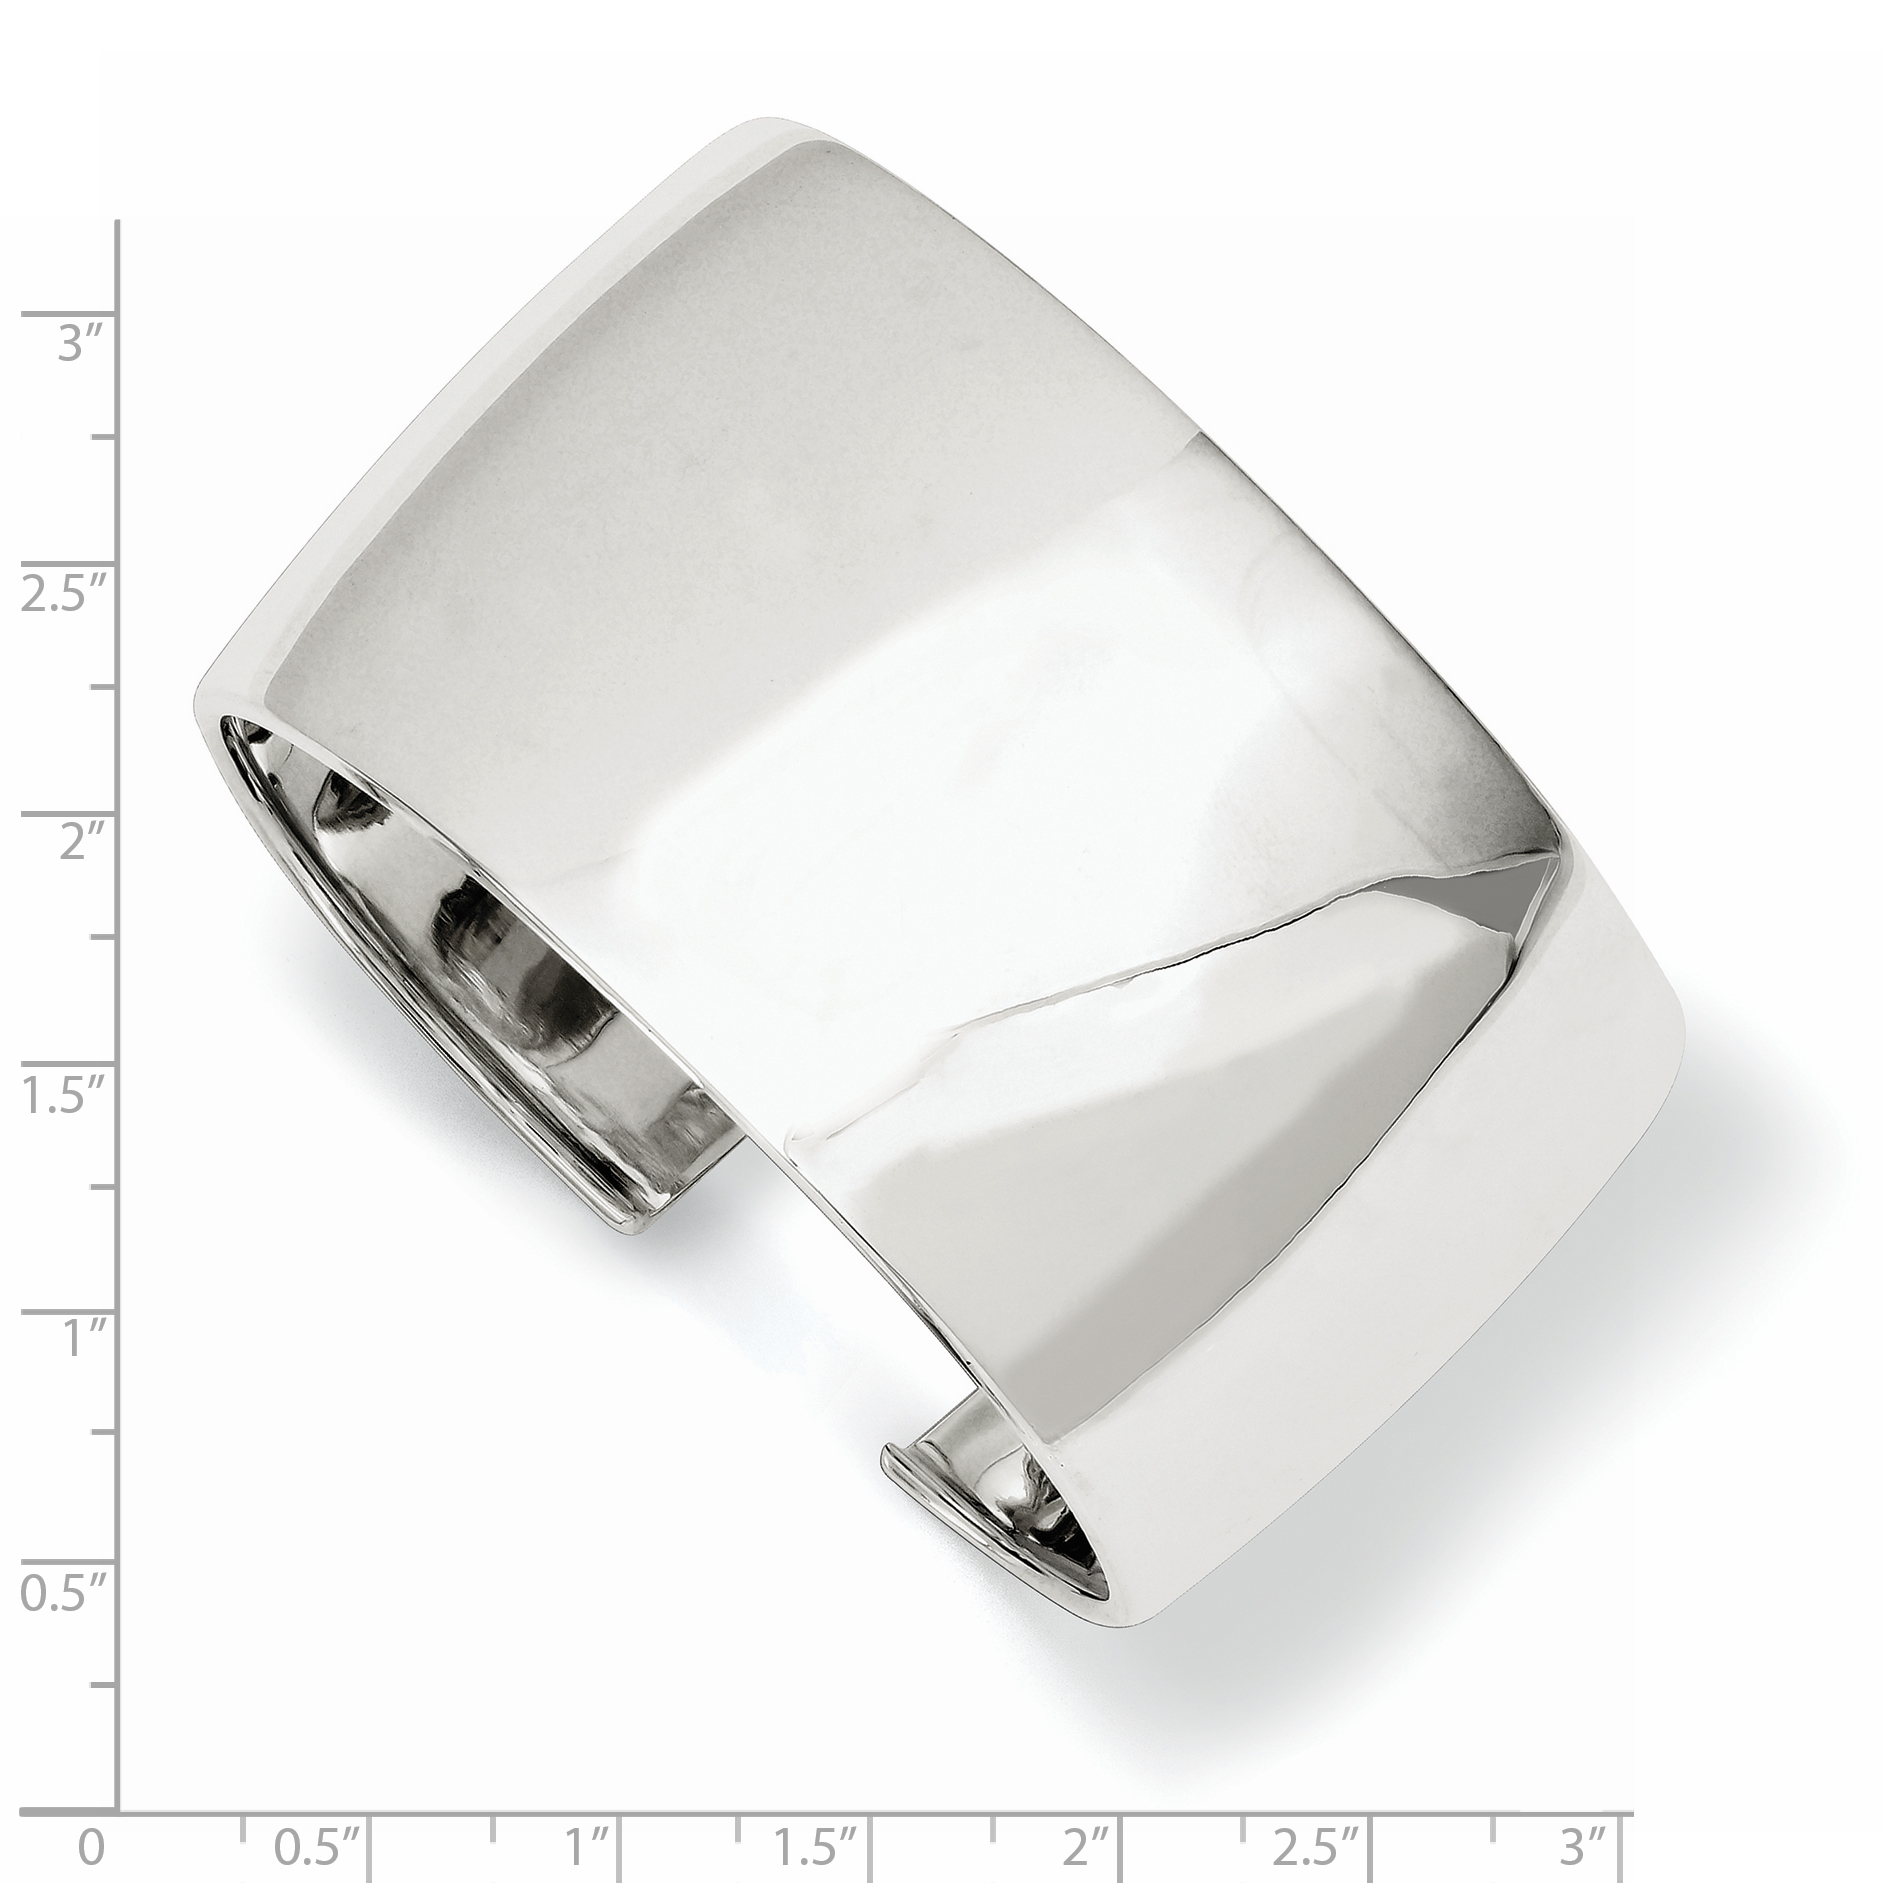 925 Sterling Silver 40mm Cuff Bangle Bracelet Expandable Stackable Fine Jewelry Gifts For Women For Her - image 1 of 2